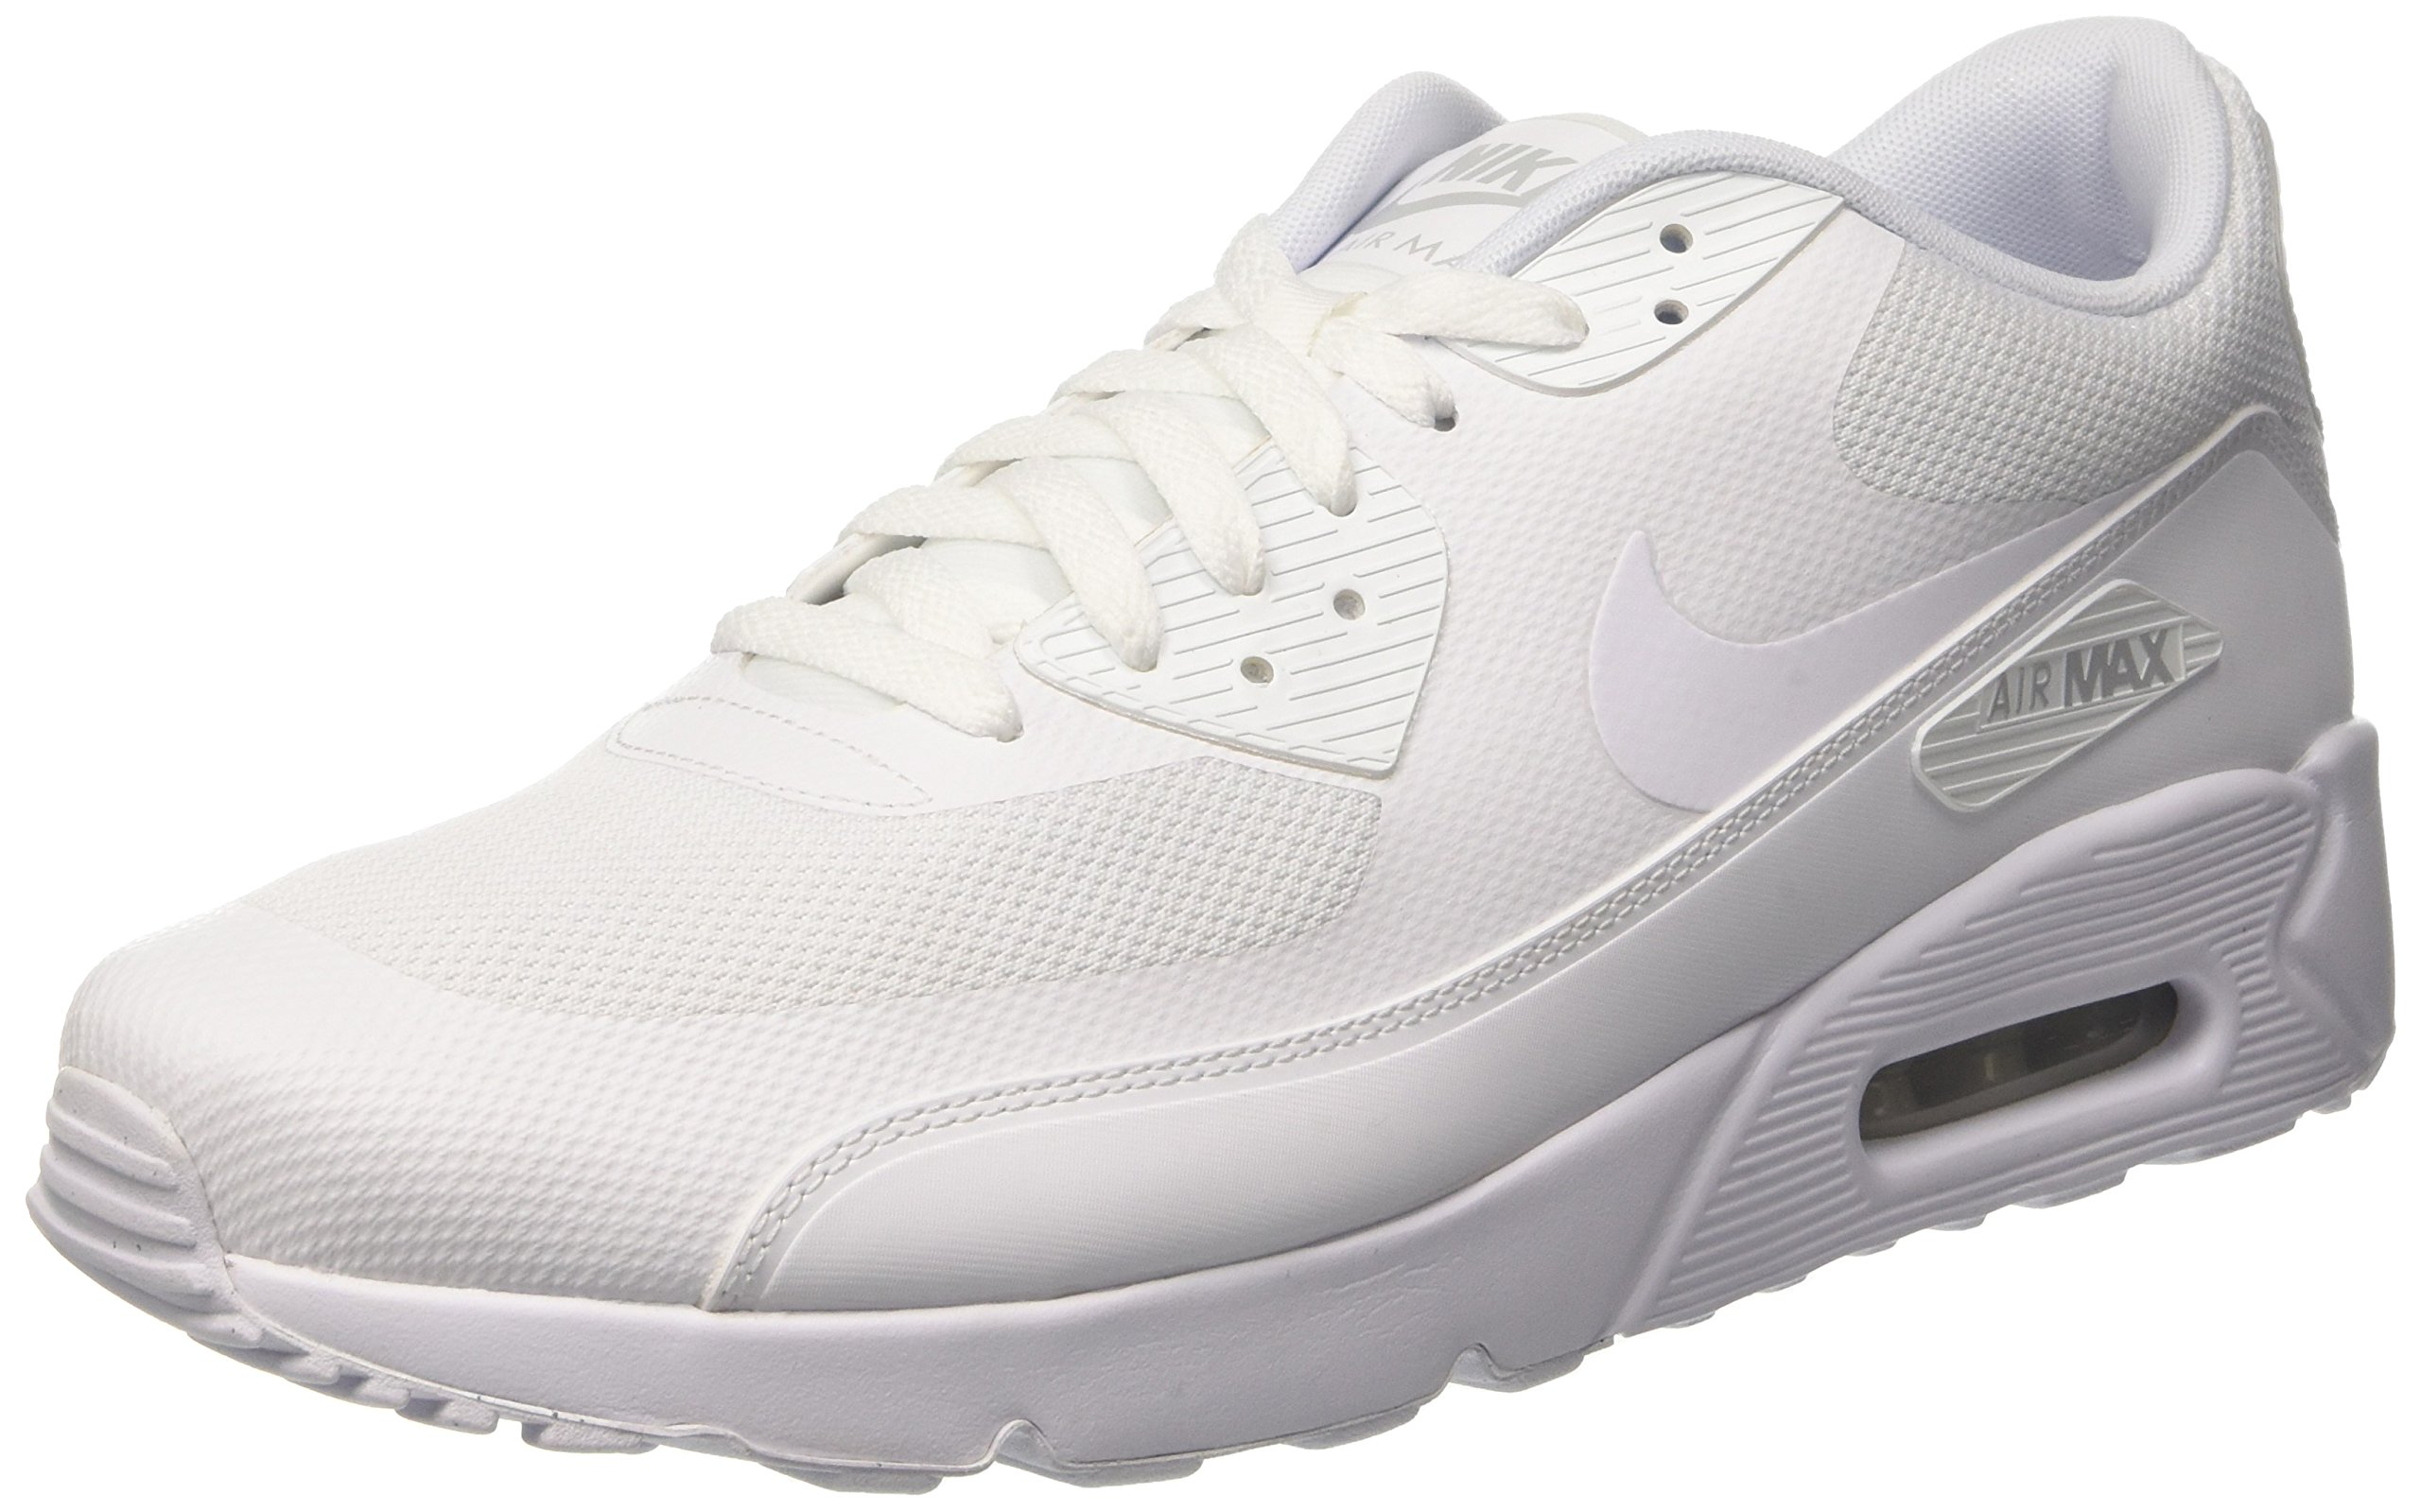 f1b7ab1b79101 Galleon - Nike Men s Air Max 90 Ultra 2.0 Essential White 875695-101 (Size   9.5)